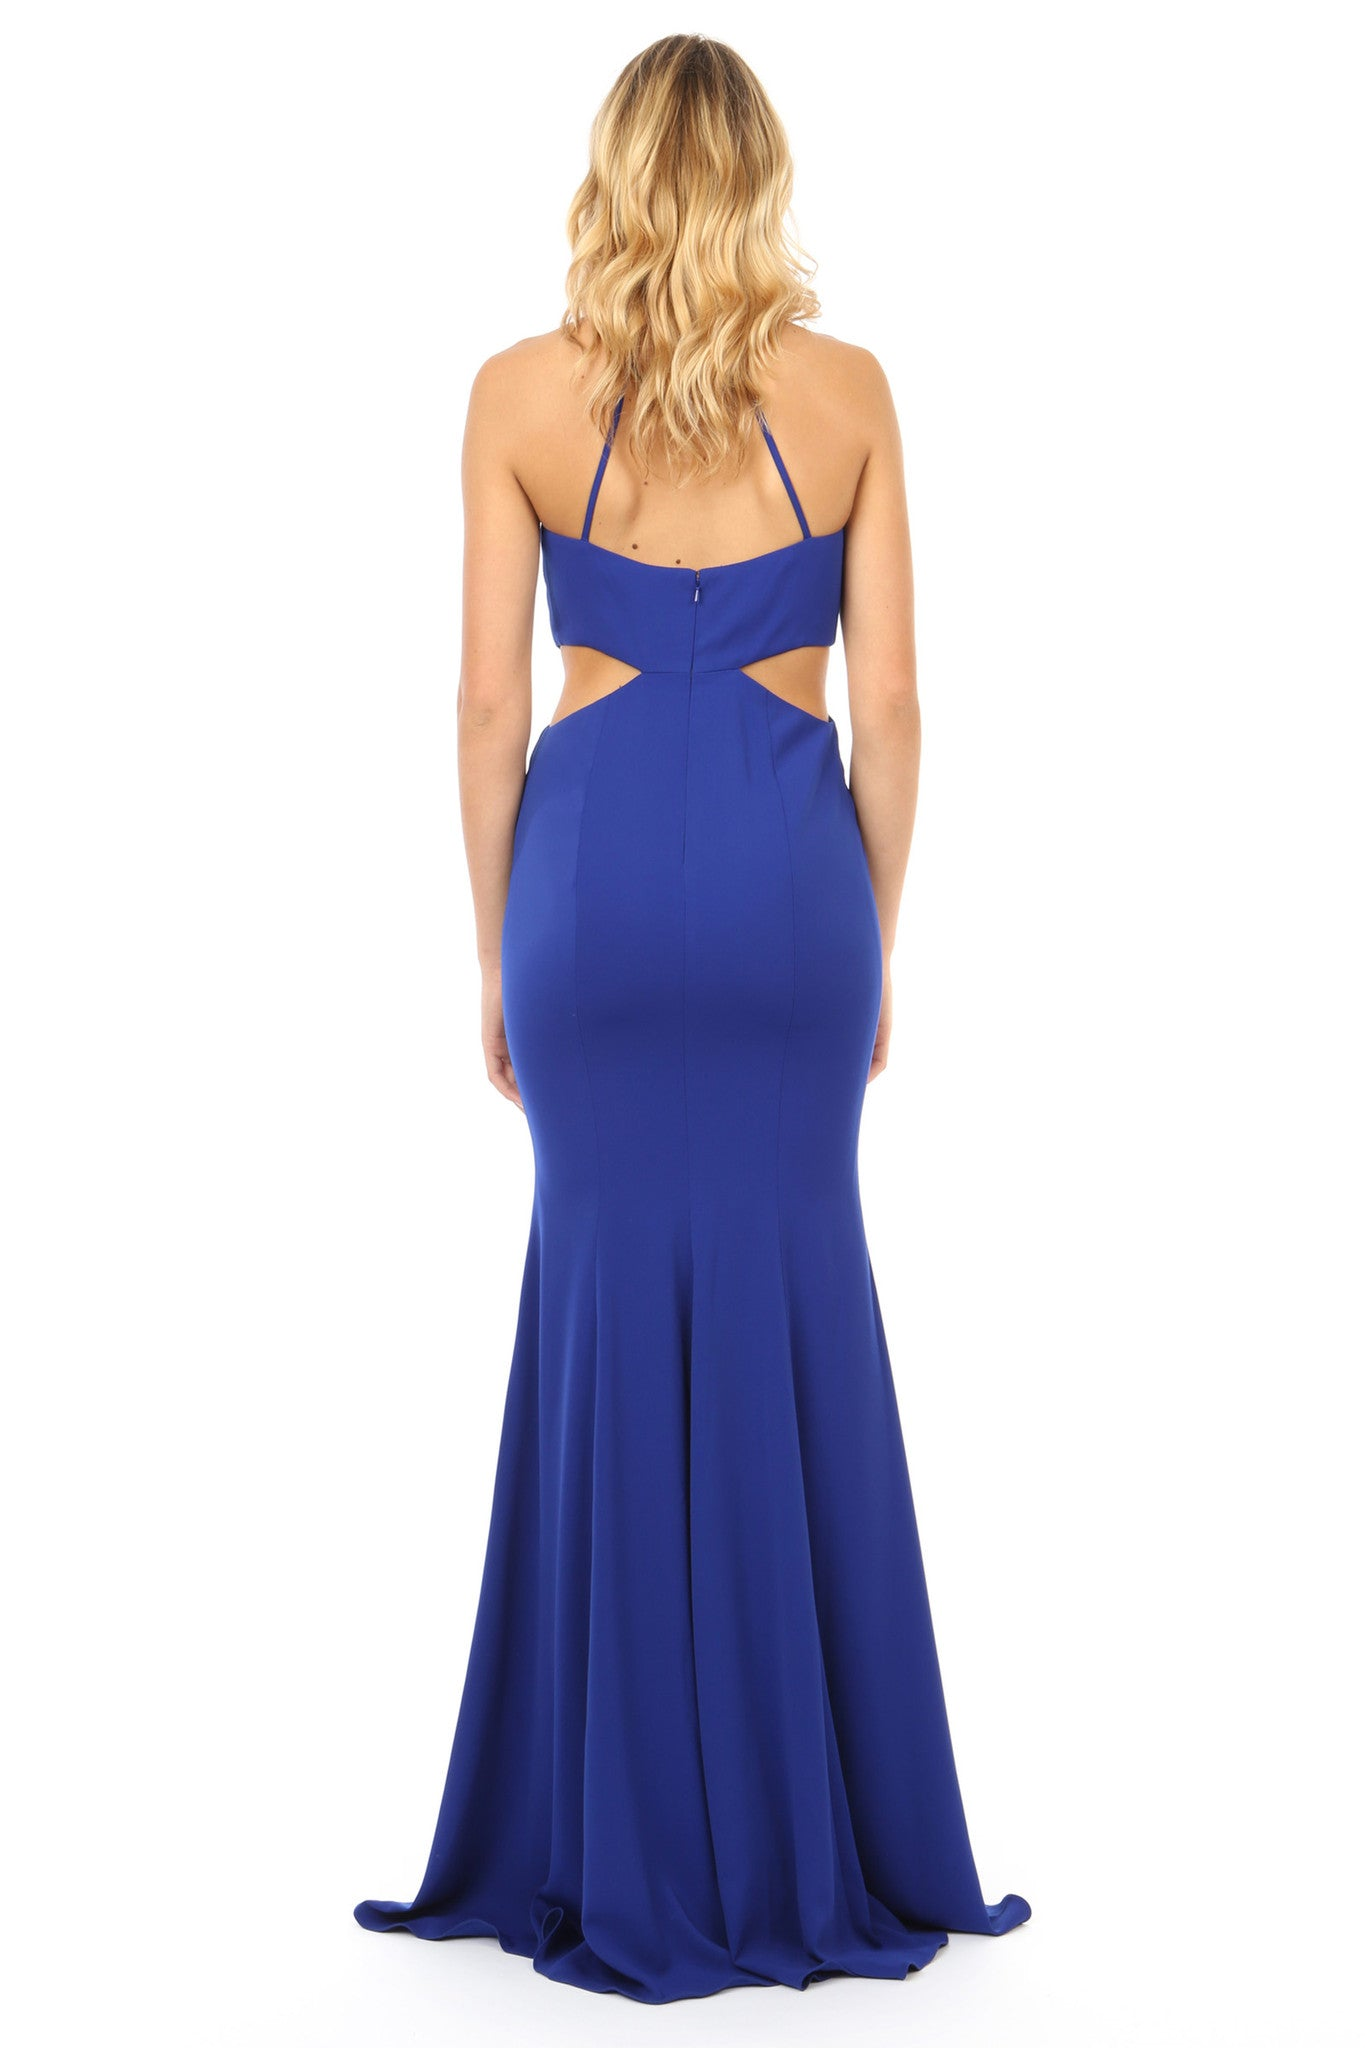 Jay Godfrey Cobalt Cut-Out High Neck Gown - Back View